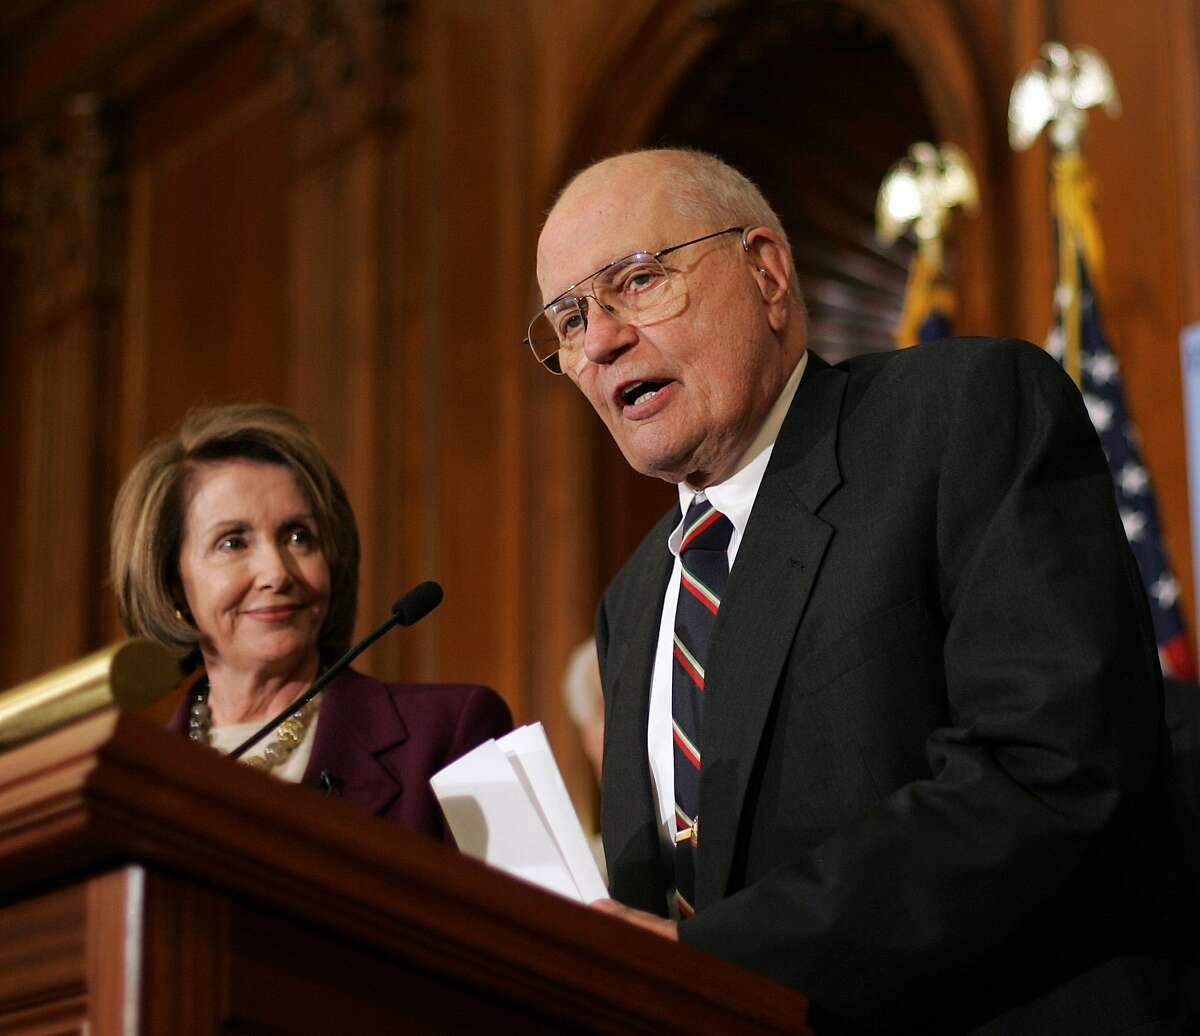 FILE - In this file photo taken on December 18, 2007 US Speaker of the House Nancy Pelosi (L) listens to remarks by Democratic Representative from Michigan John Dingell, Chairman of the House Energy and Commerce Committee, before signing the energy bill 18 December 2007 on Capitol Hill in Washington, DC. Trump took a shot at Dingell during a rally Wednesday, suggesting the deceased representative is in hell, prompting a response from Dingell's spouse.